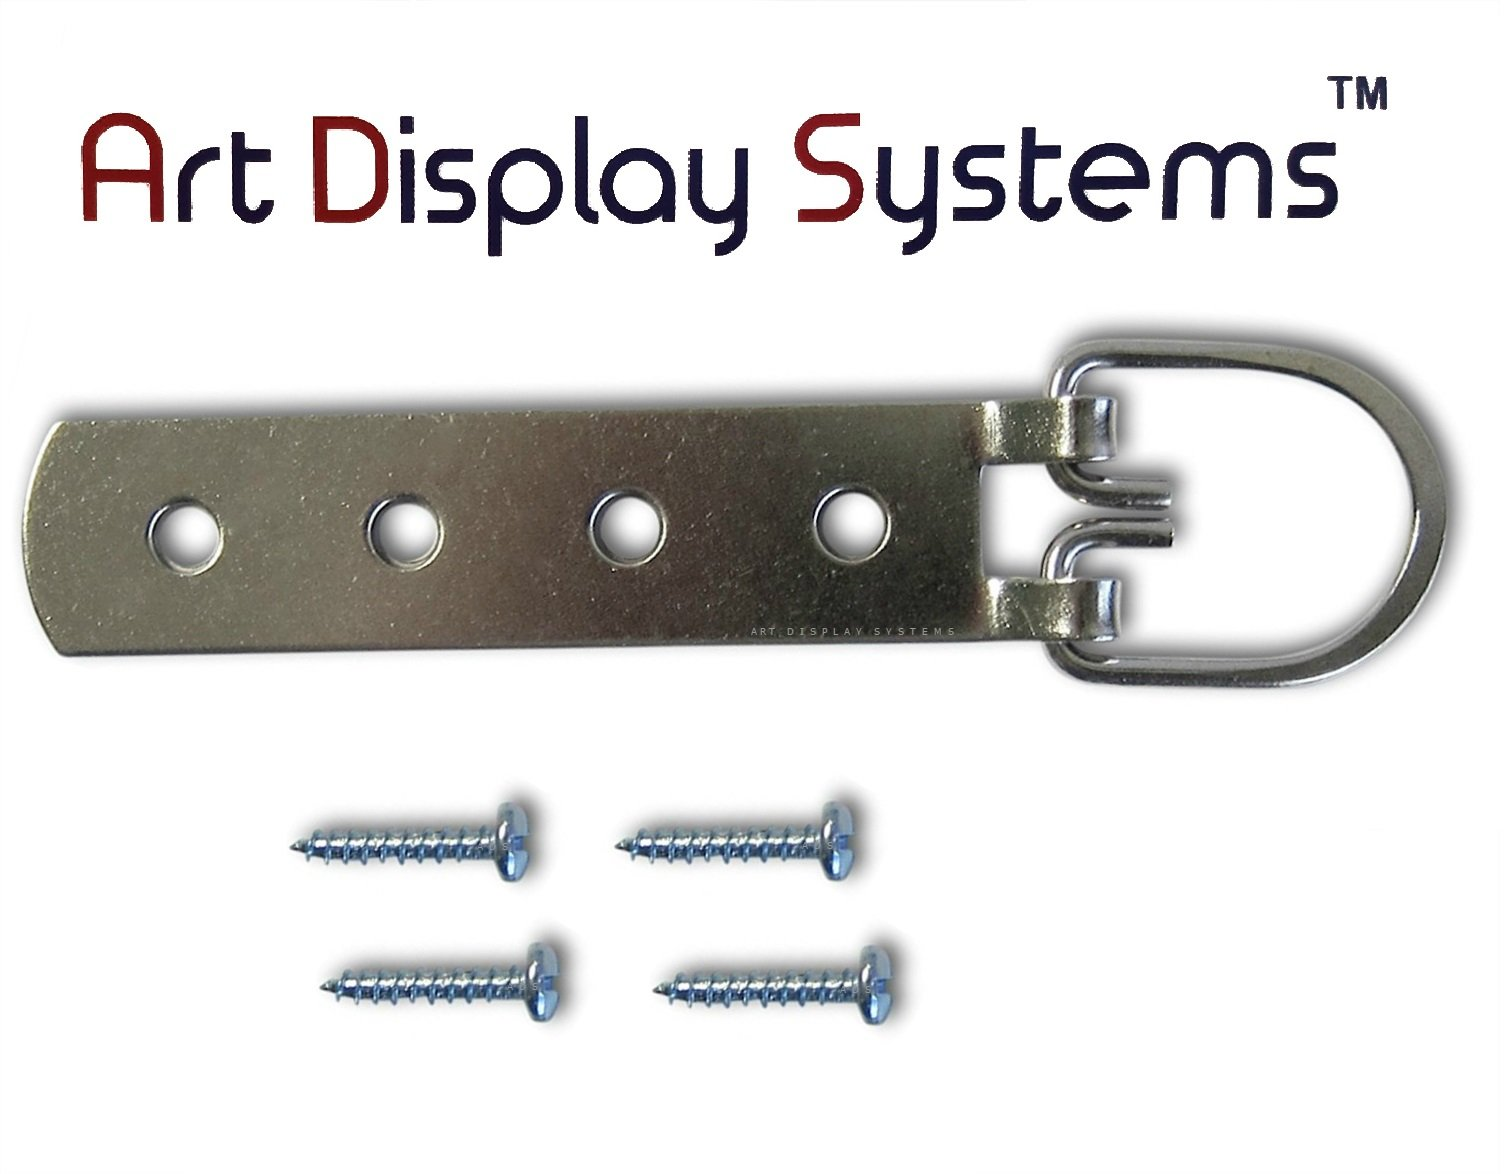 ADS Super Heavy Duty Extra Large Strap Hanger - 4 Hole Zinc Plated D-Ring Hanger - 2 Pack by ART DISPLAY SYSTEMS